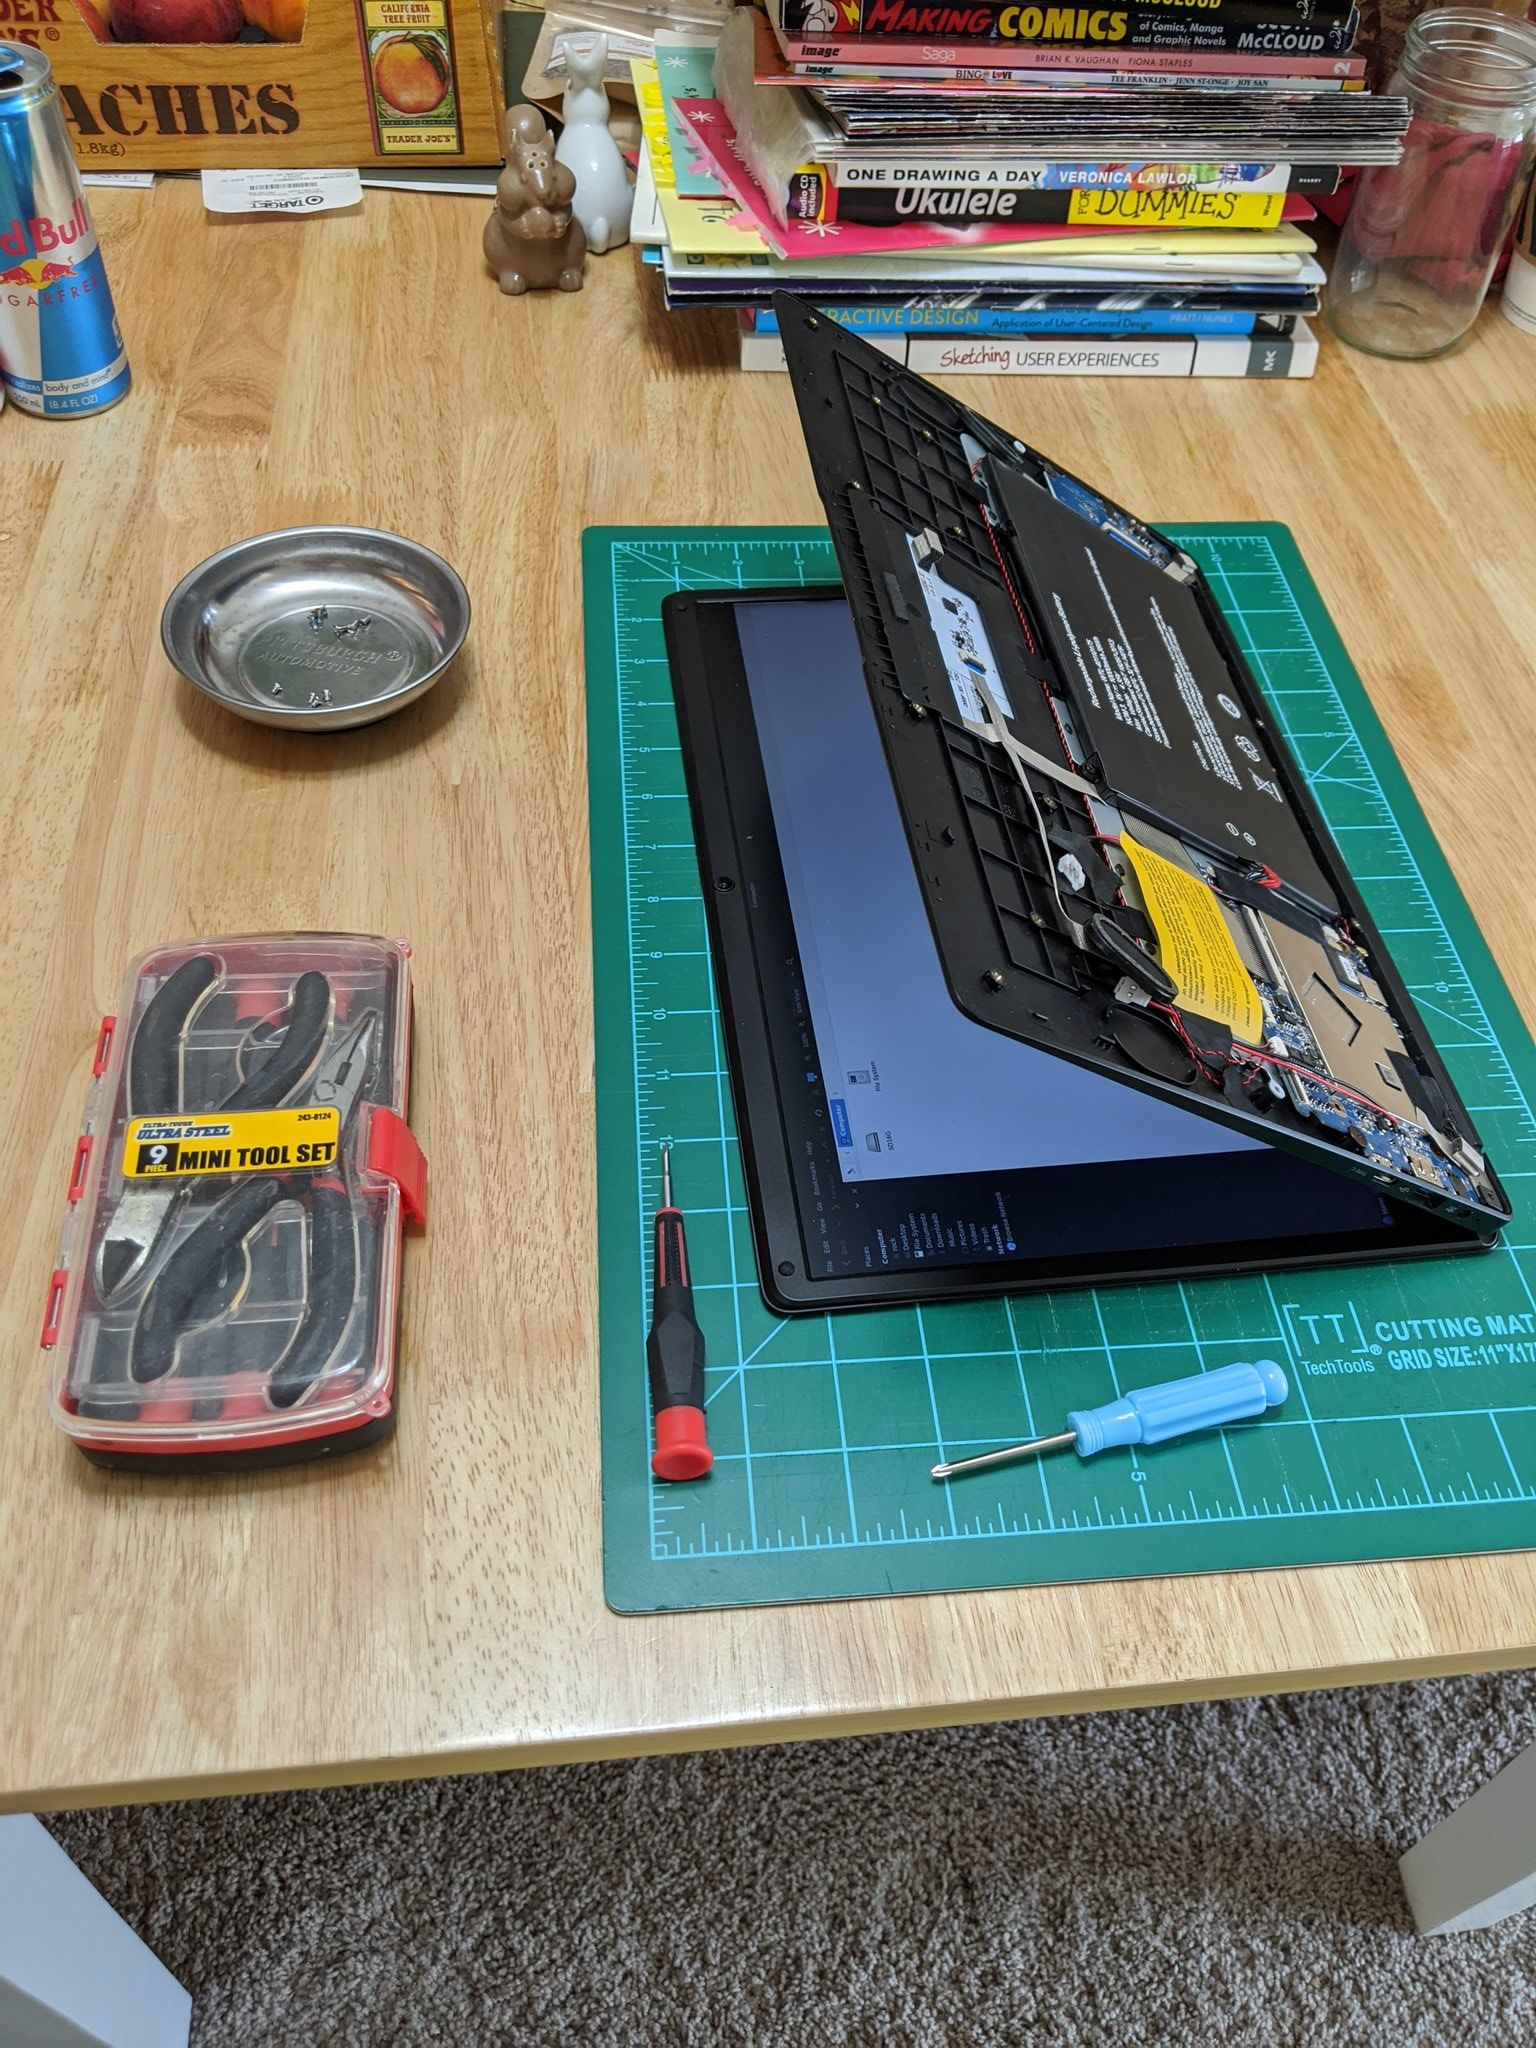 Pinebook Pro paritally disassembled